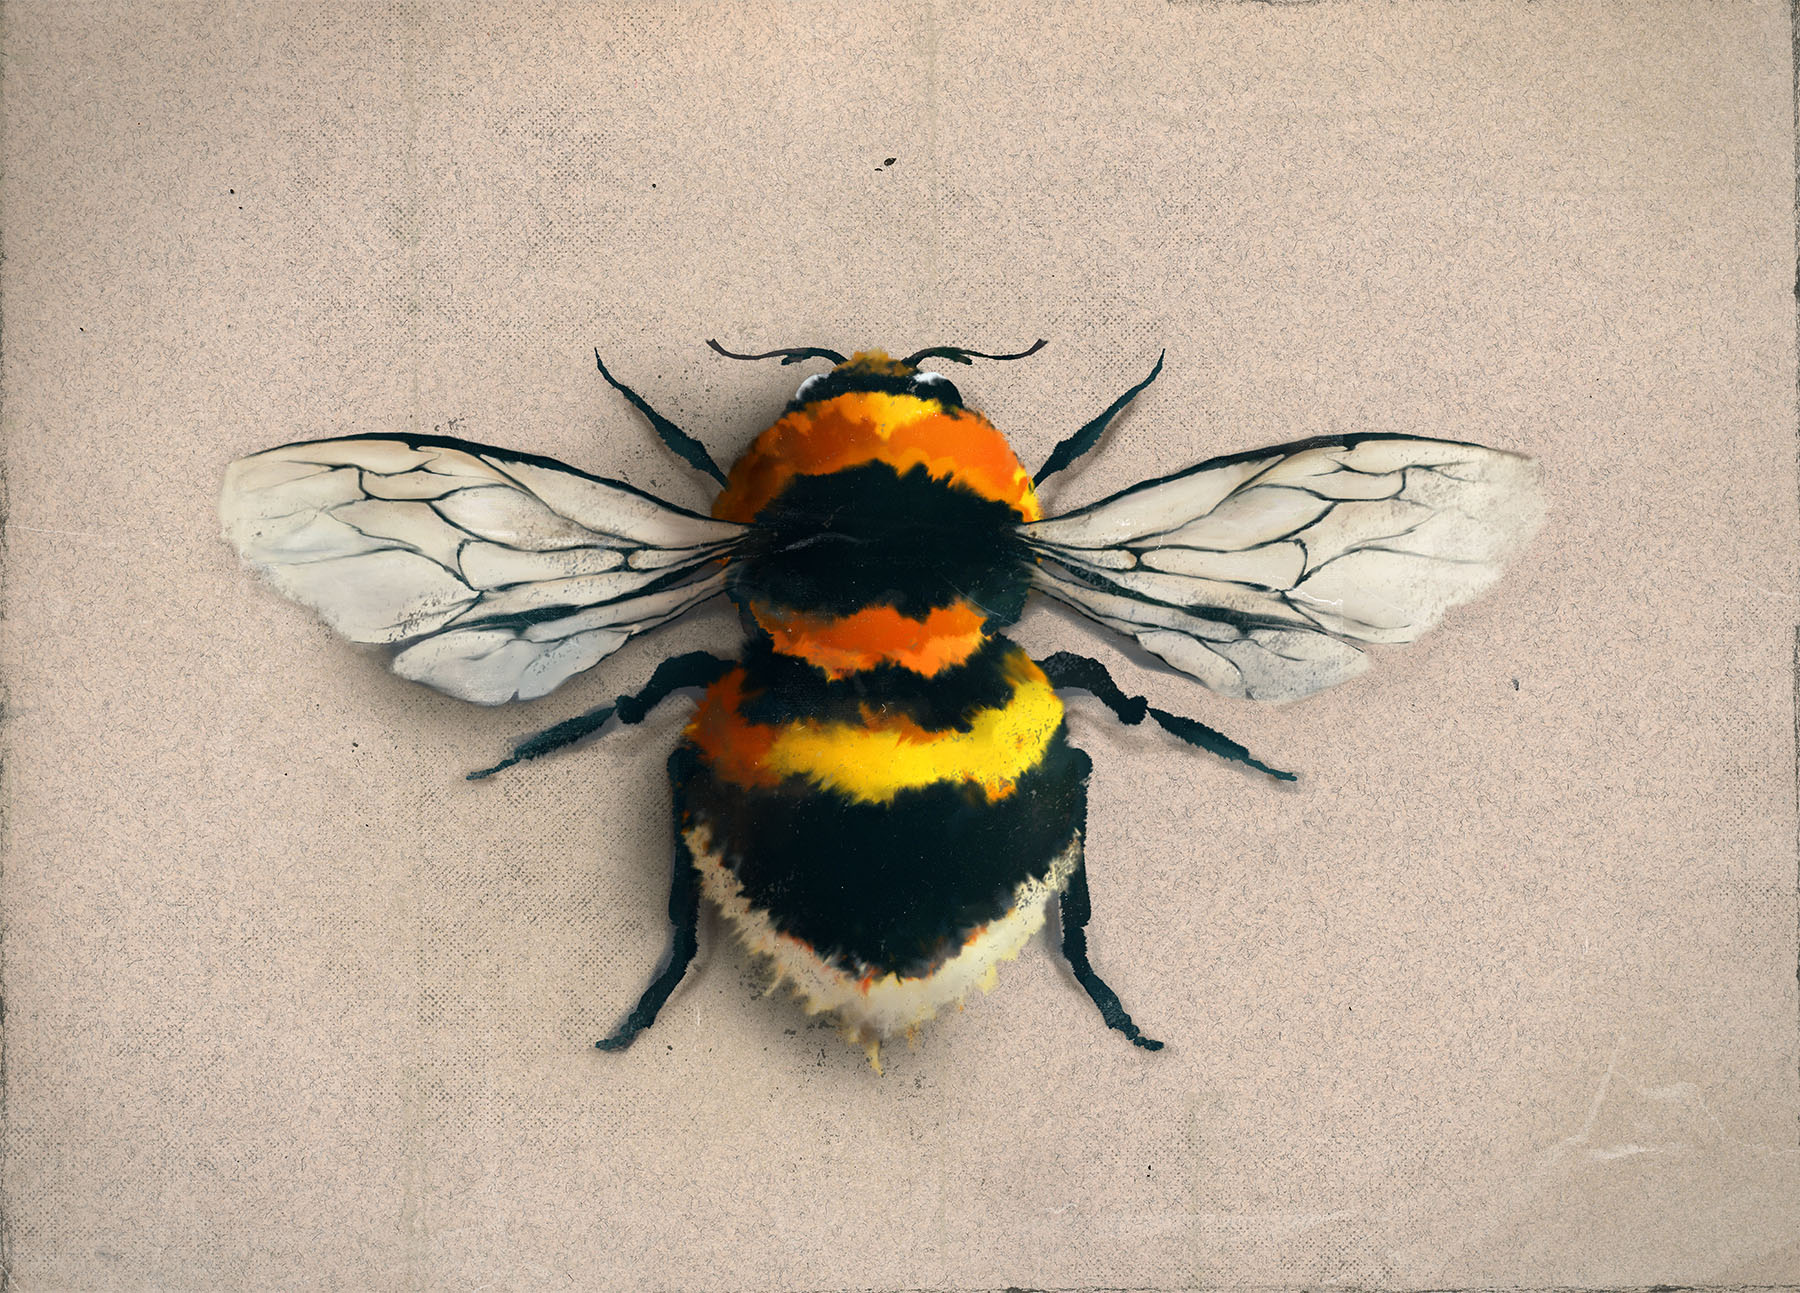 Bees_Bumblebee_Bombus Hortorum_Illustration_Julie Smits.jpg